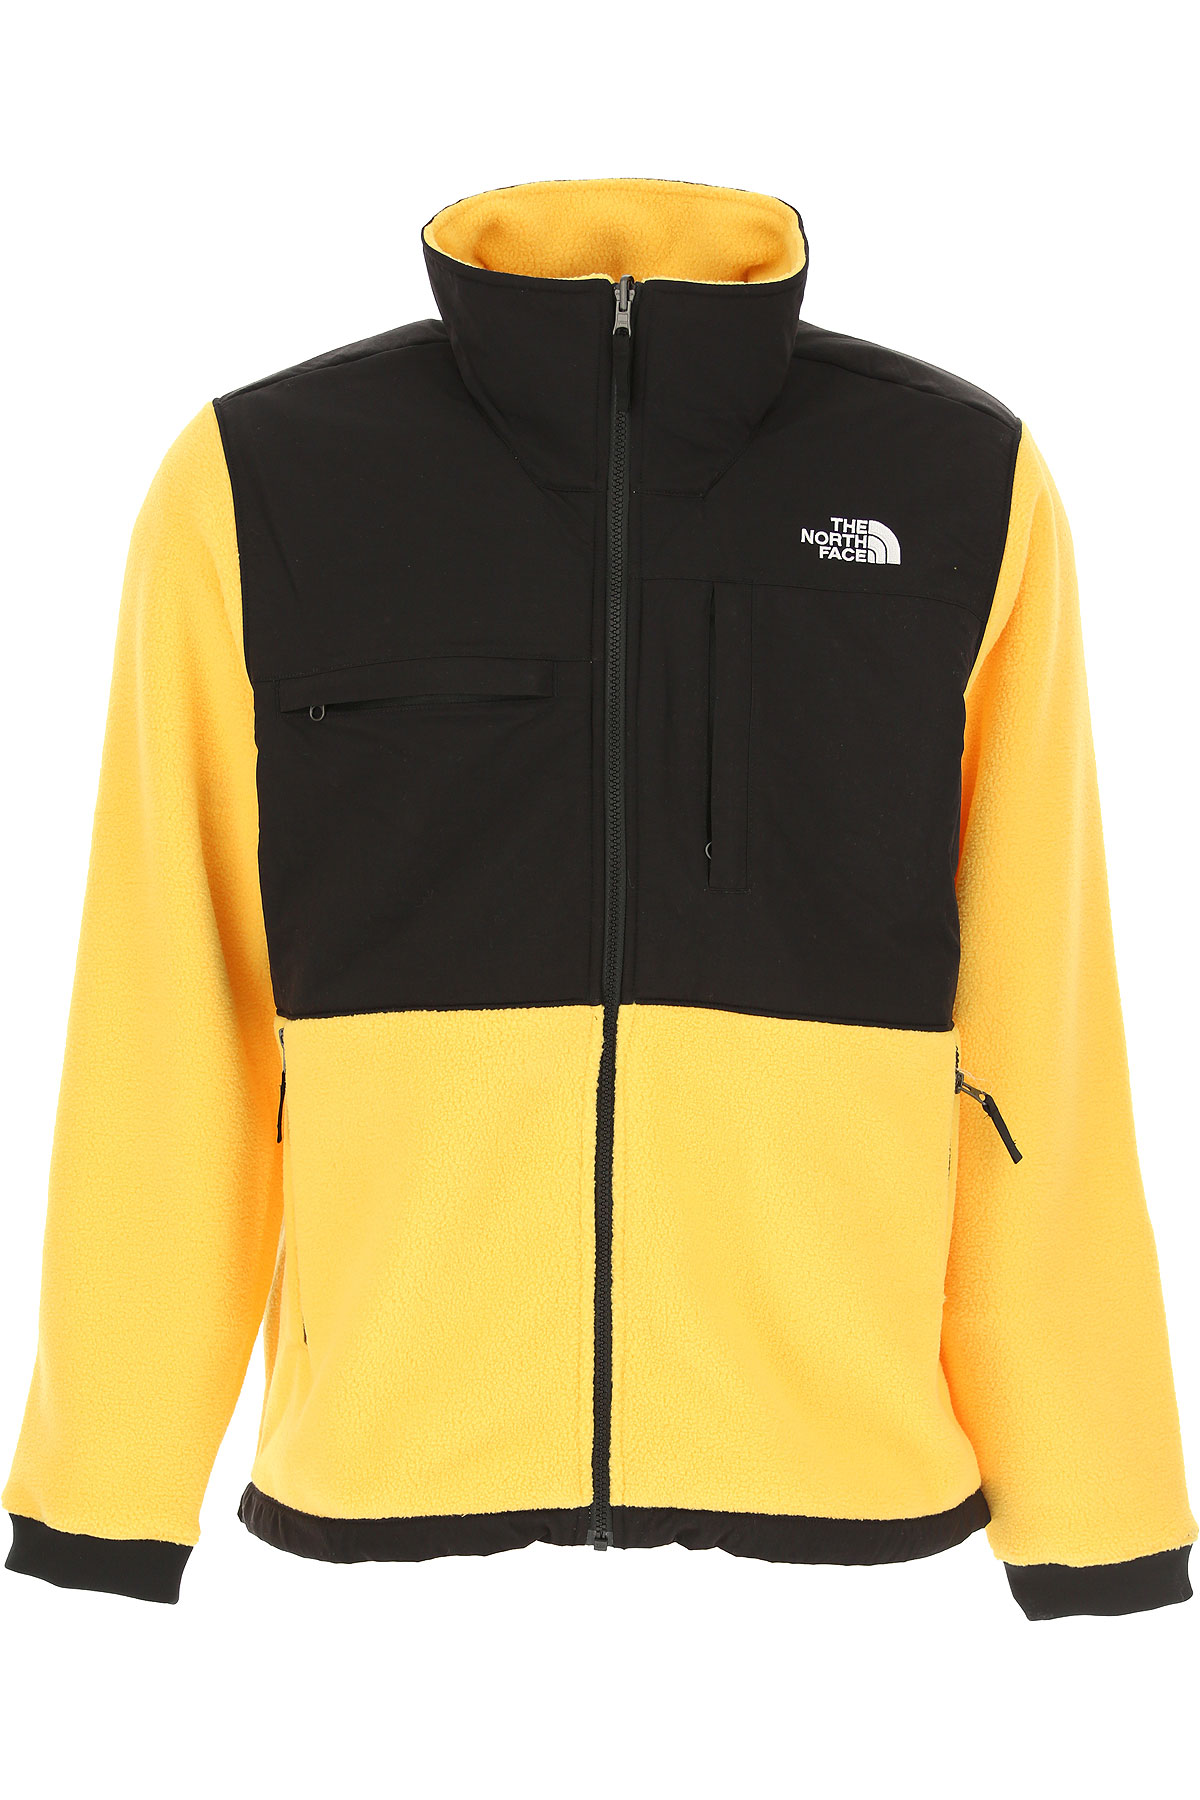 The North Face Jacket for Men On Sale, Yellow, polyestere, 2019, L M S